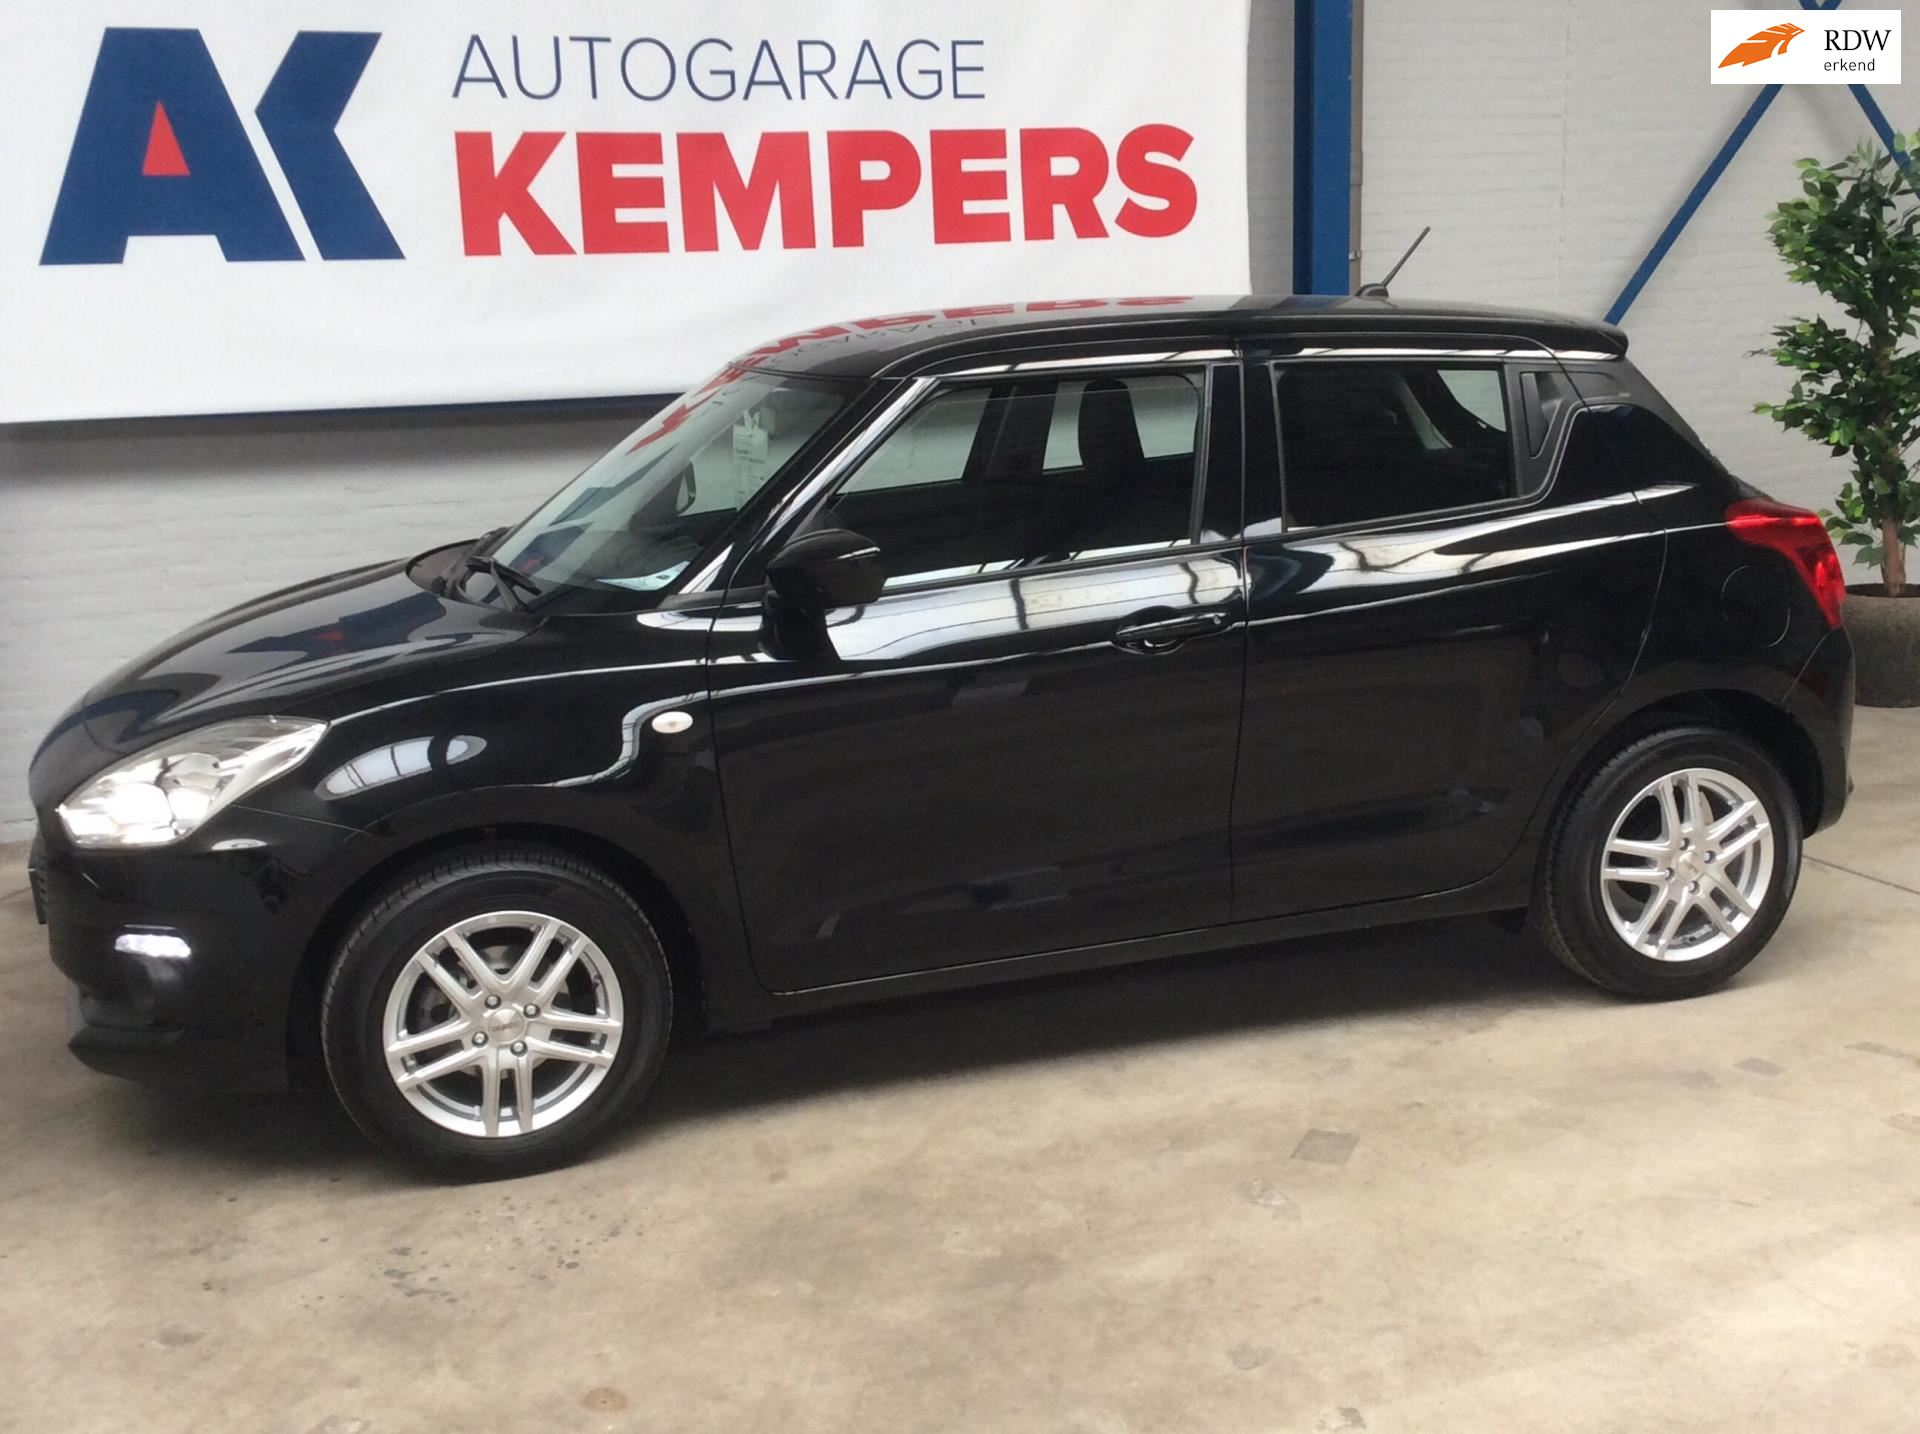 Suzuki Swift occasion - Handelsonderneming P. Kempers